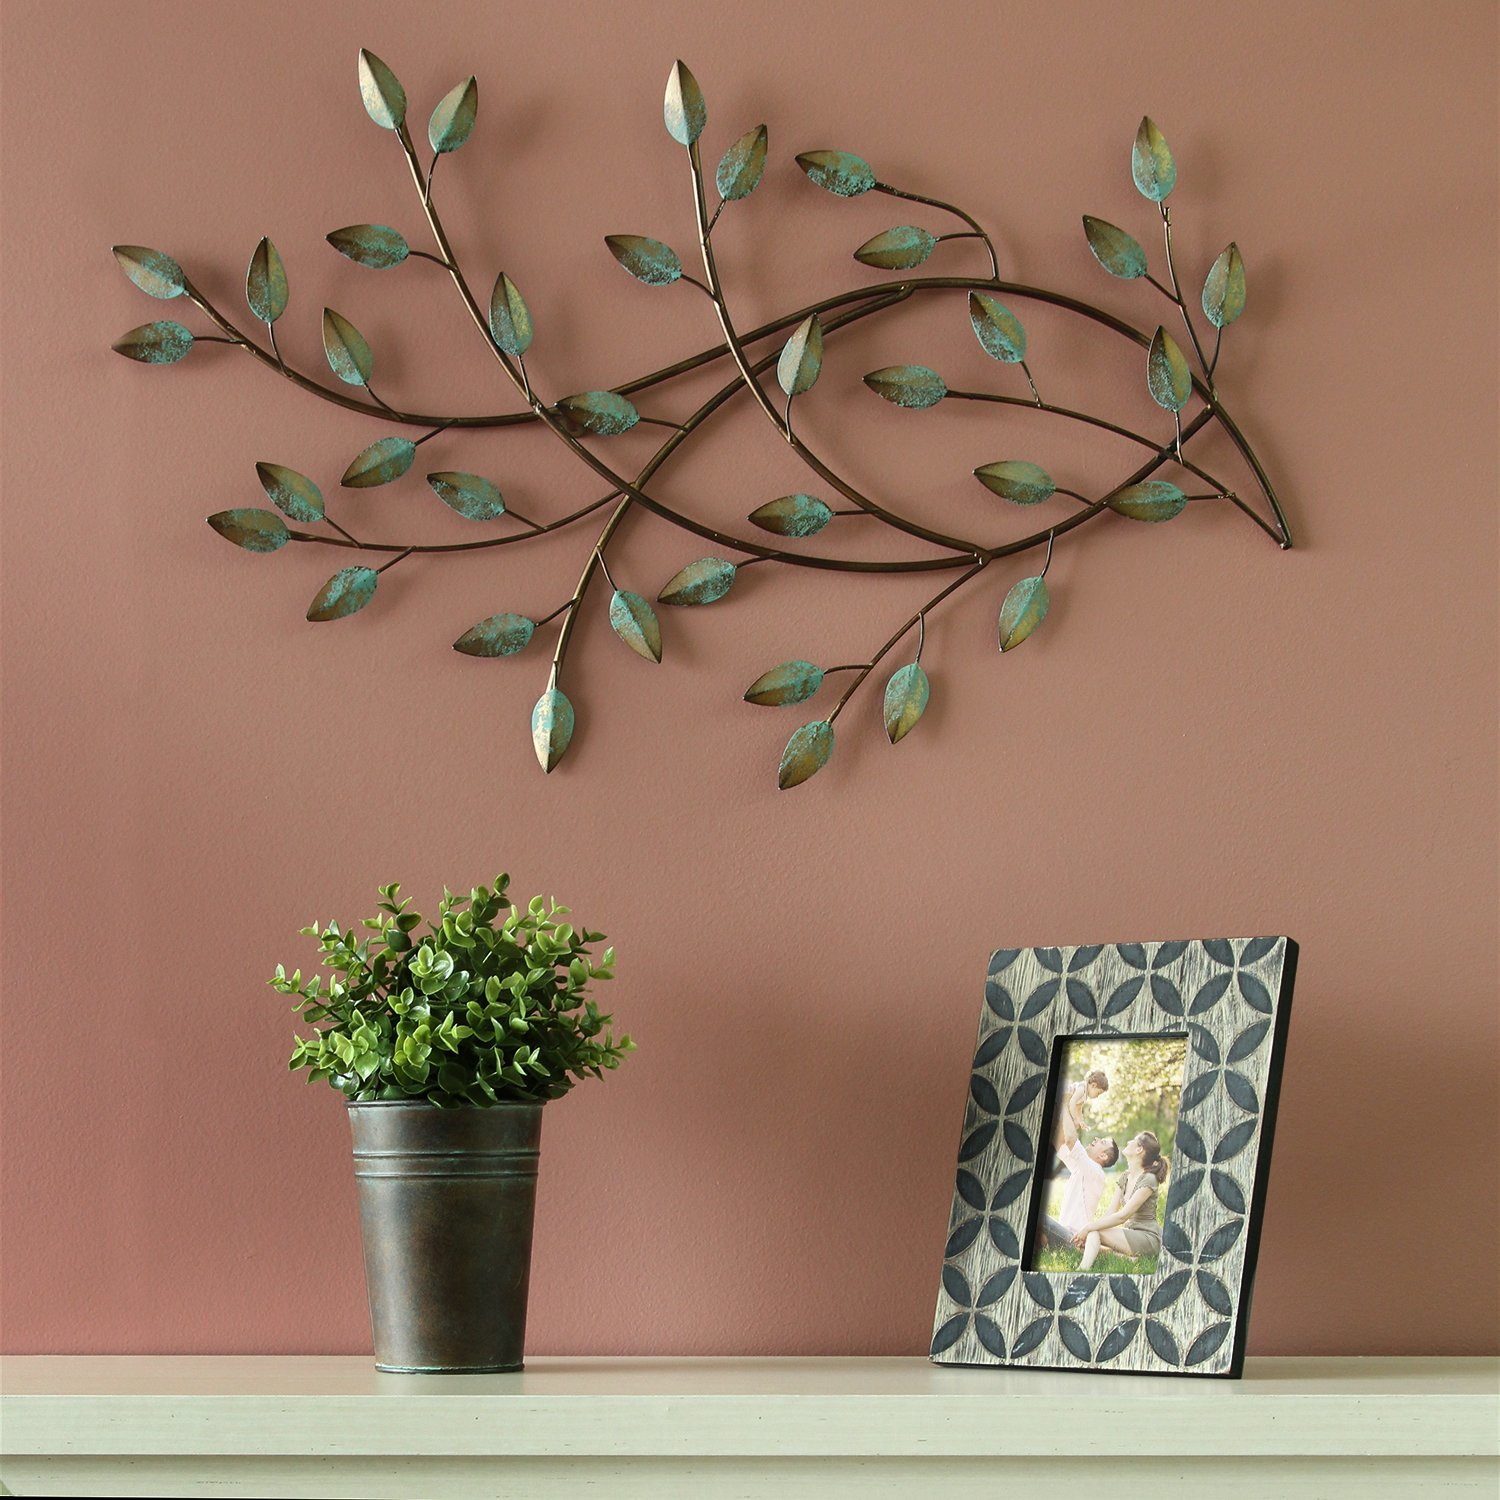 Recent Blowing Leaves Wall Decor Pertaining To Charlton Home Patina Blowing Leaves Wall Décor & Reviews (Gallery 3 of 20)